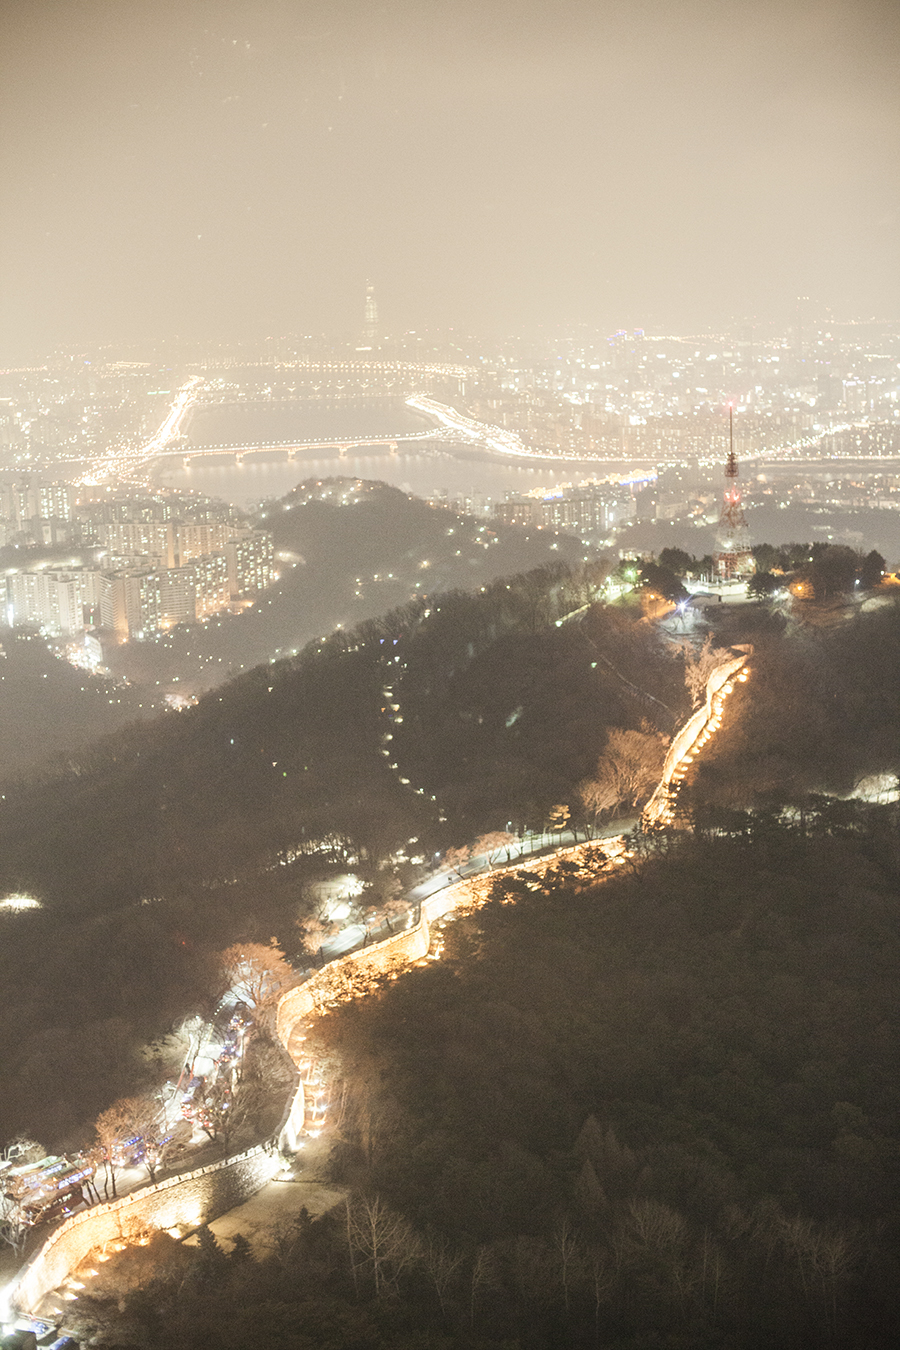 Nightscape from the observation deck of Namsan Tower, Seoul, South Korea.